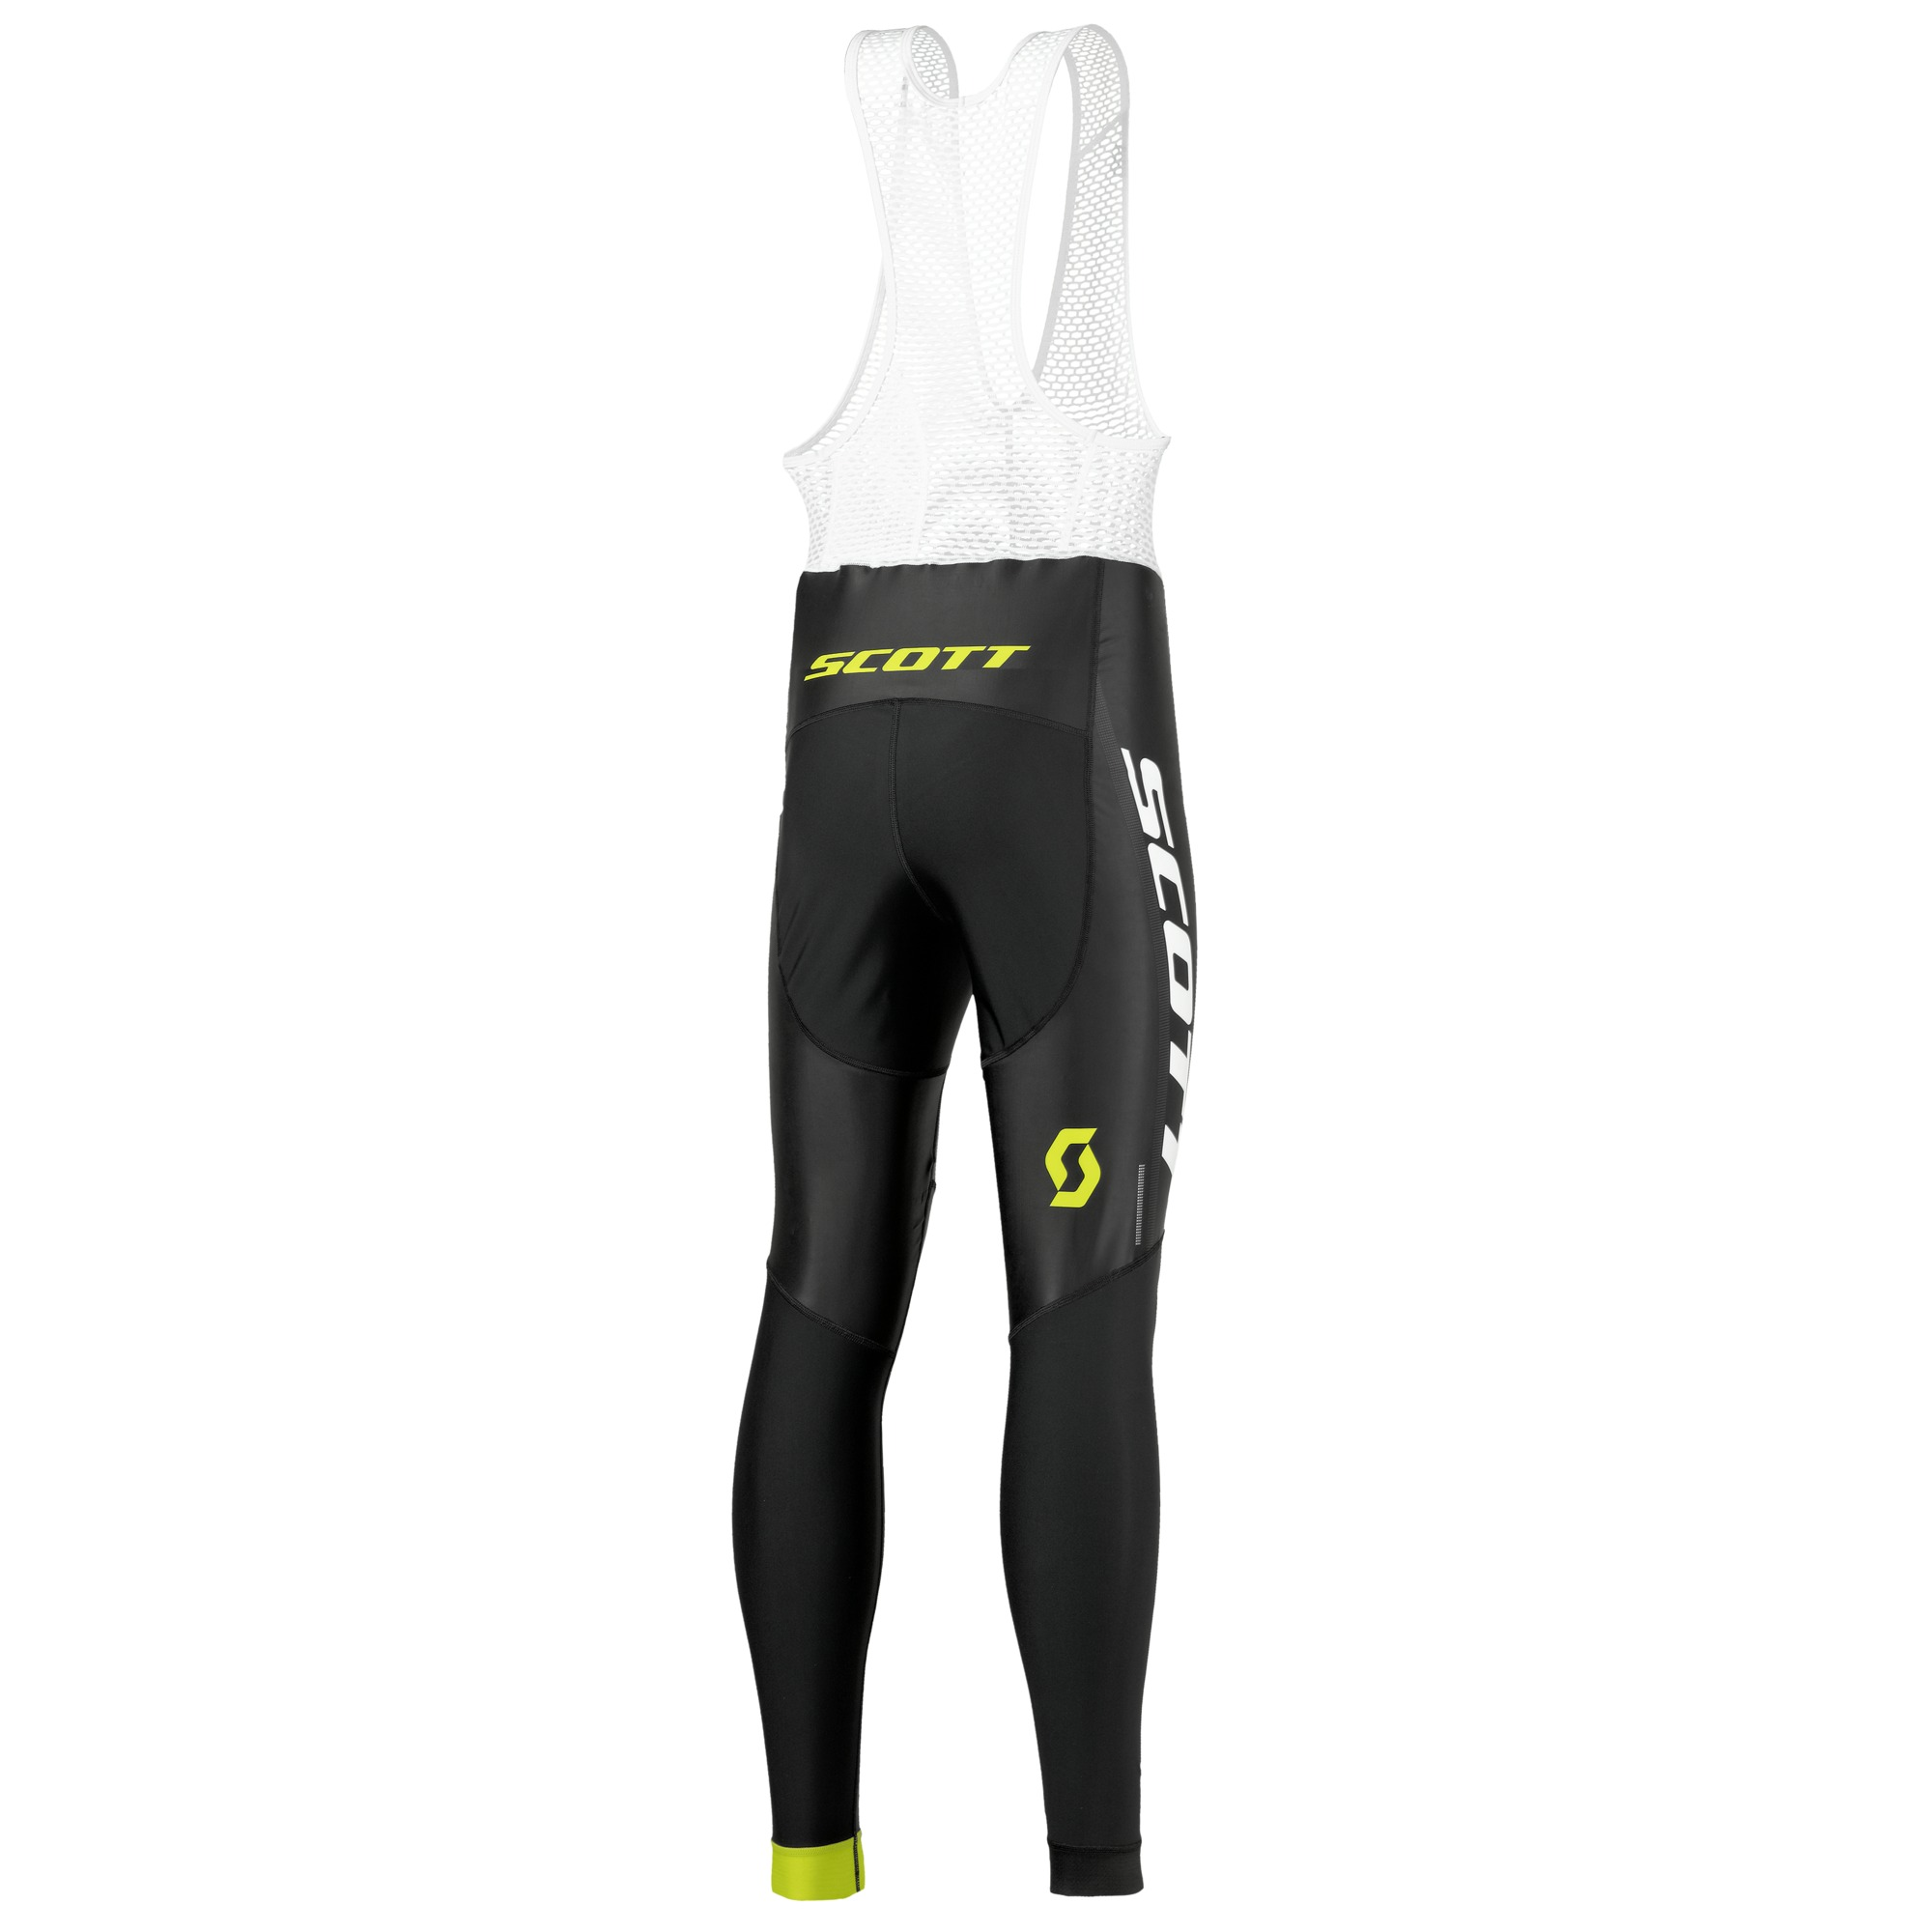 SCOTT RC Pro w/o pad Tights